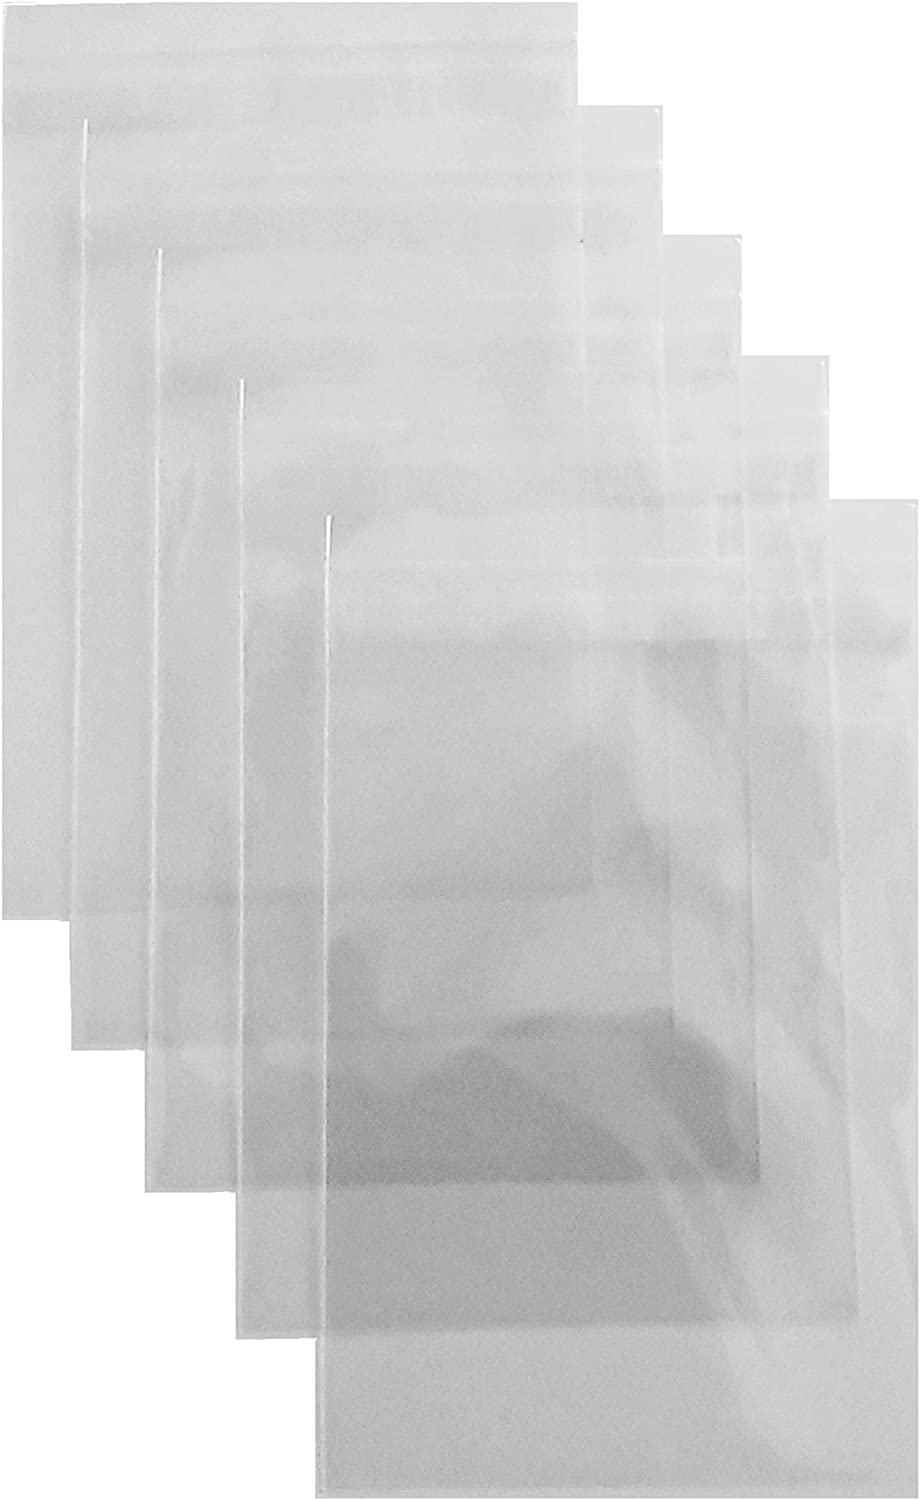 200ct Adhesive Treat Bags 2 x 3 Clear - 1.4 mils Thick Self Sealing OPP Plastic Bags/Clear Flat Resealable Cello